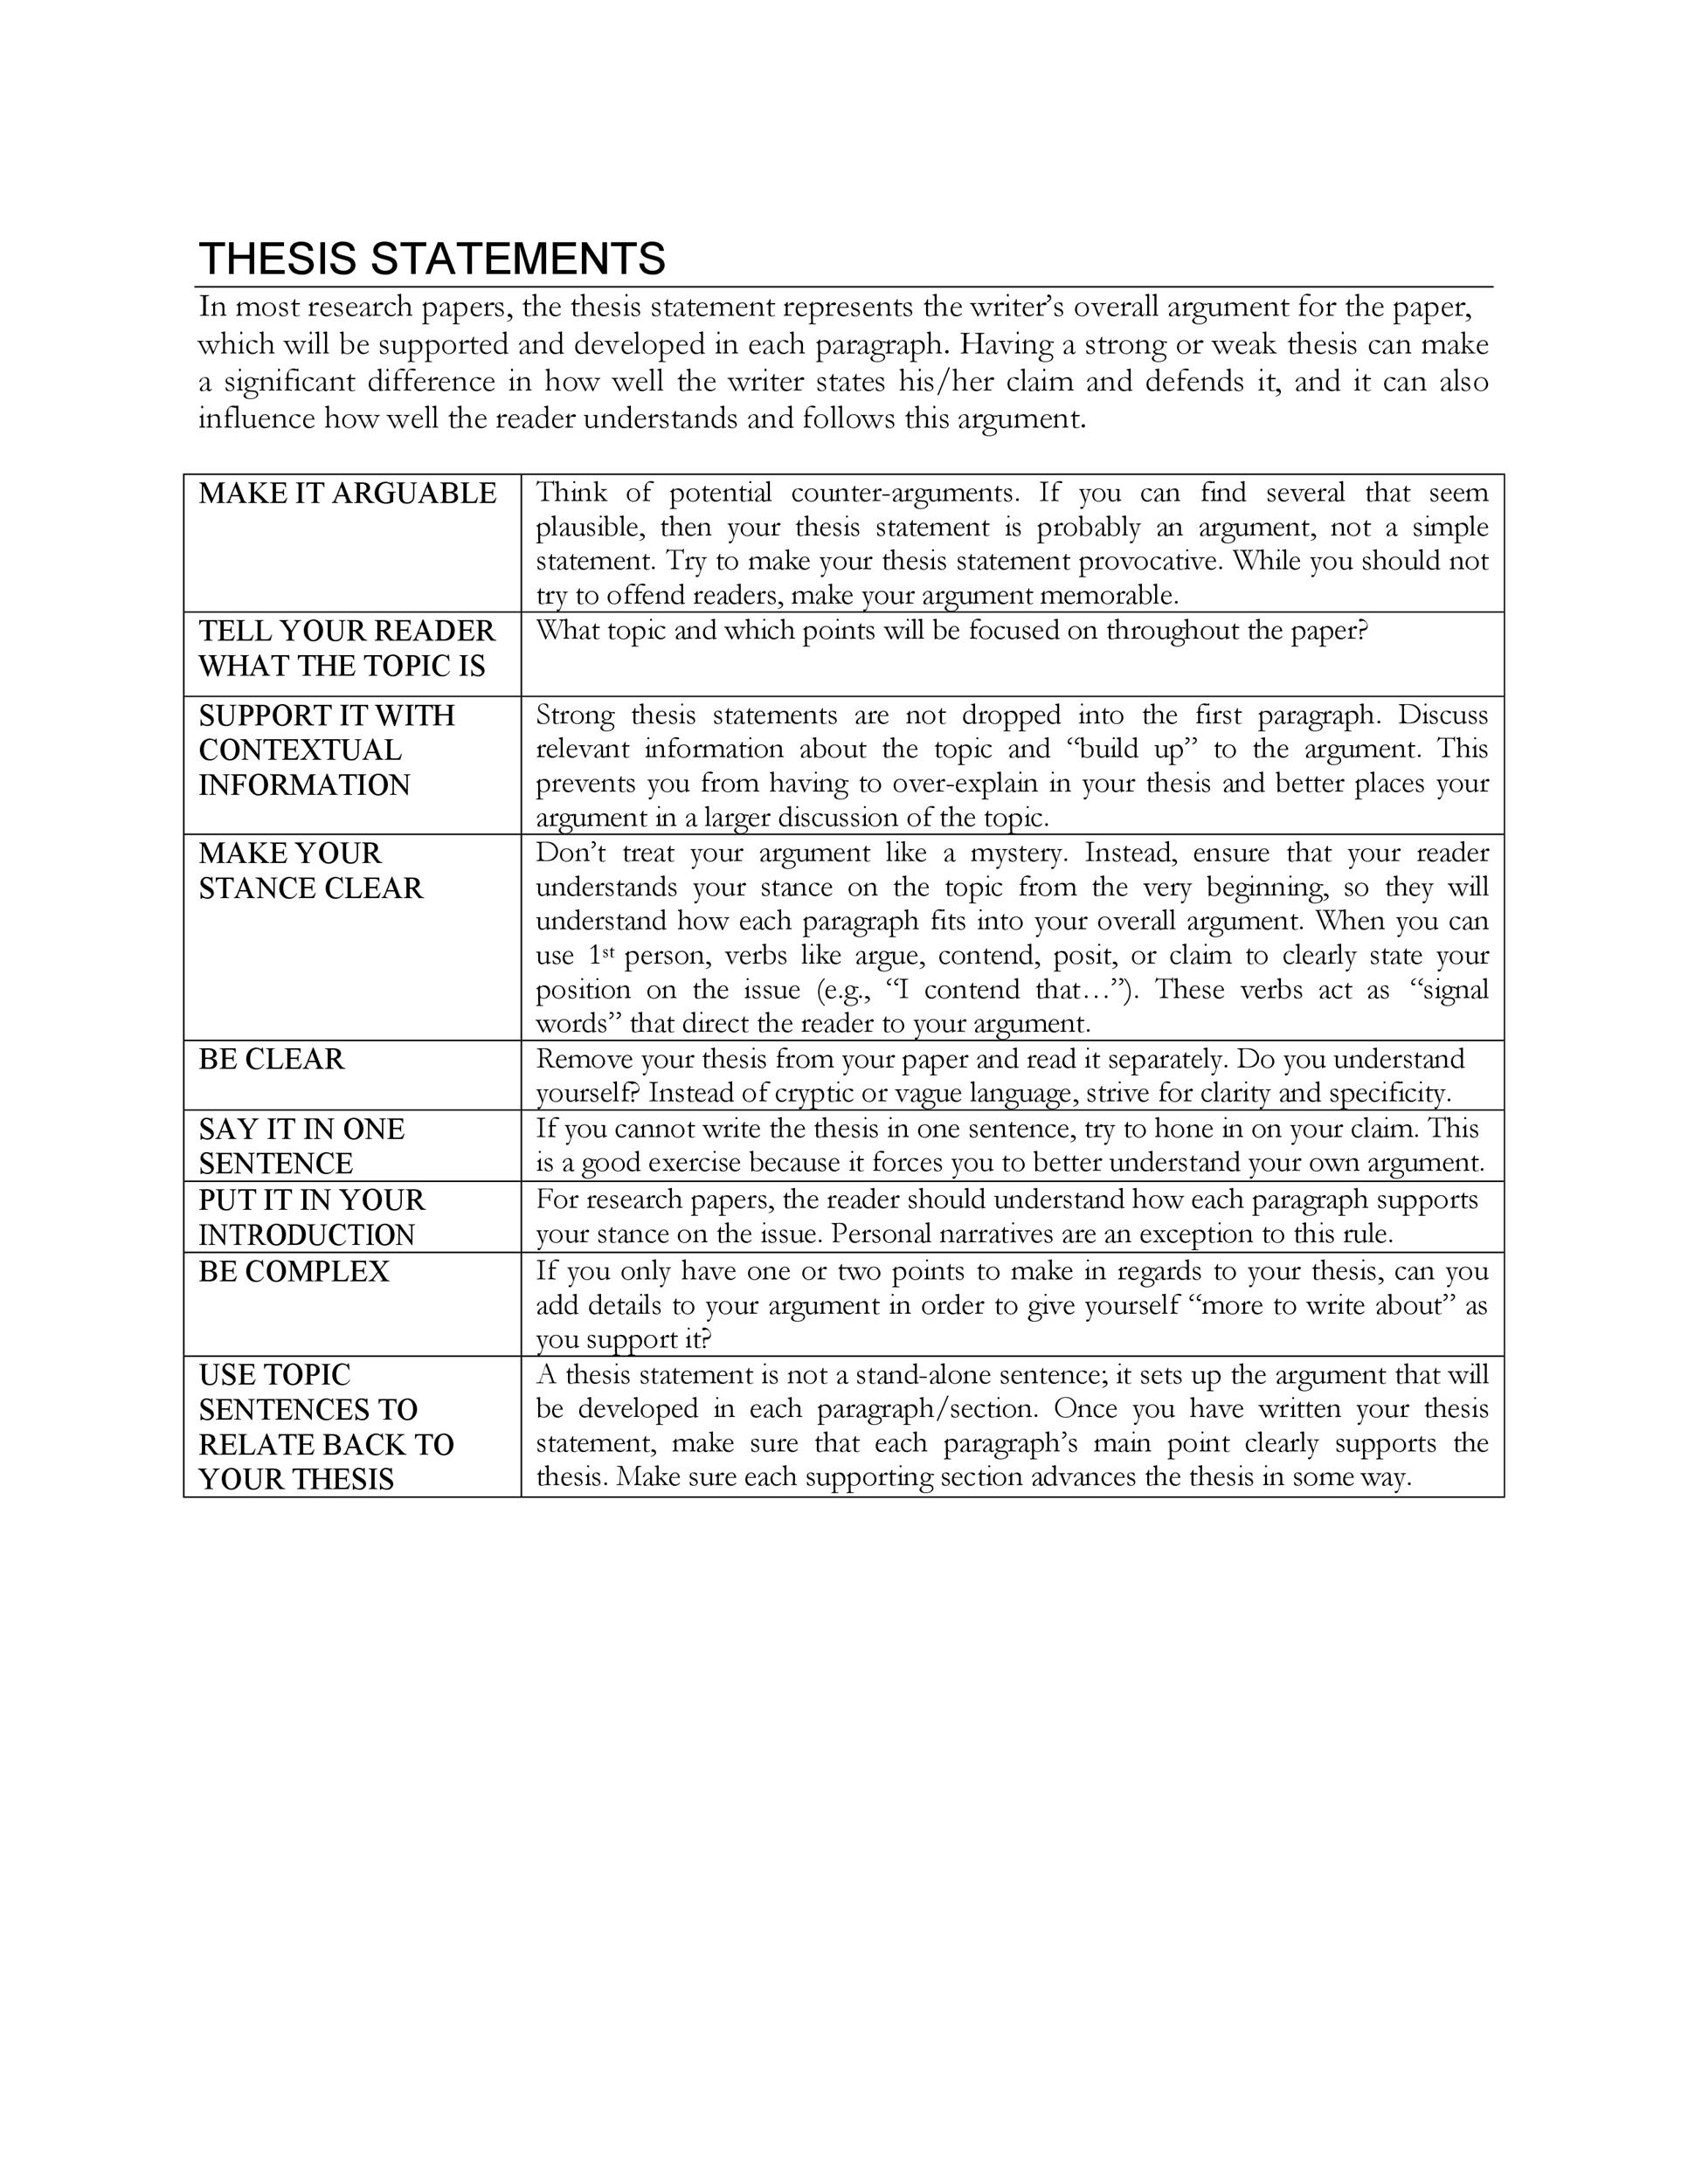 Free thesis statement template 09